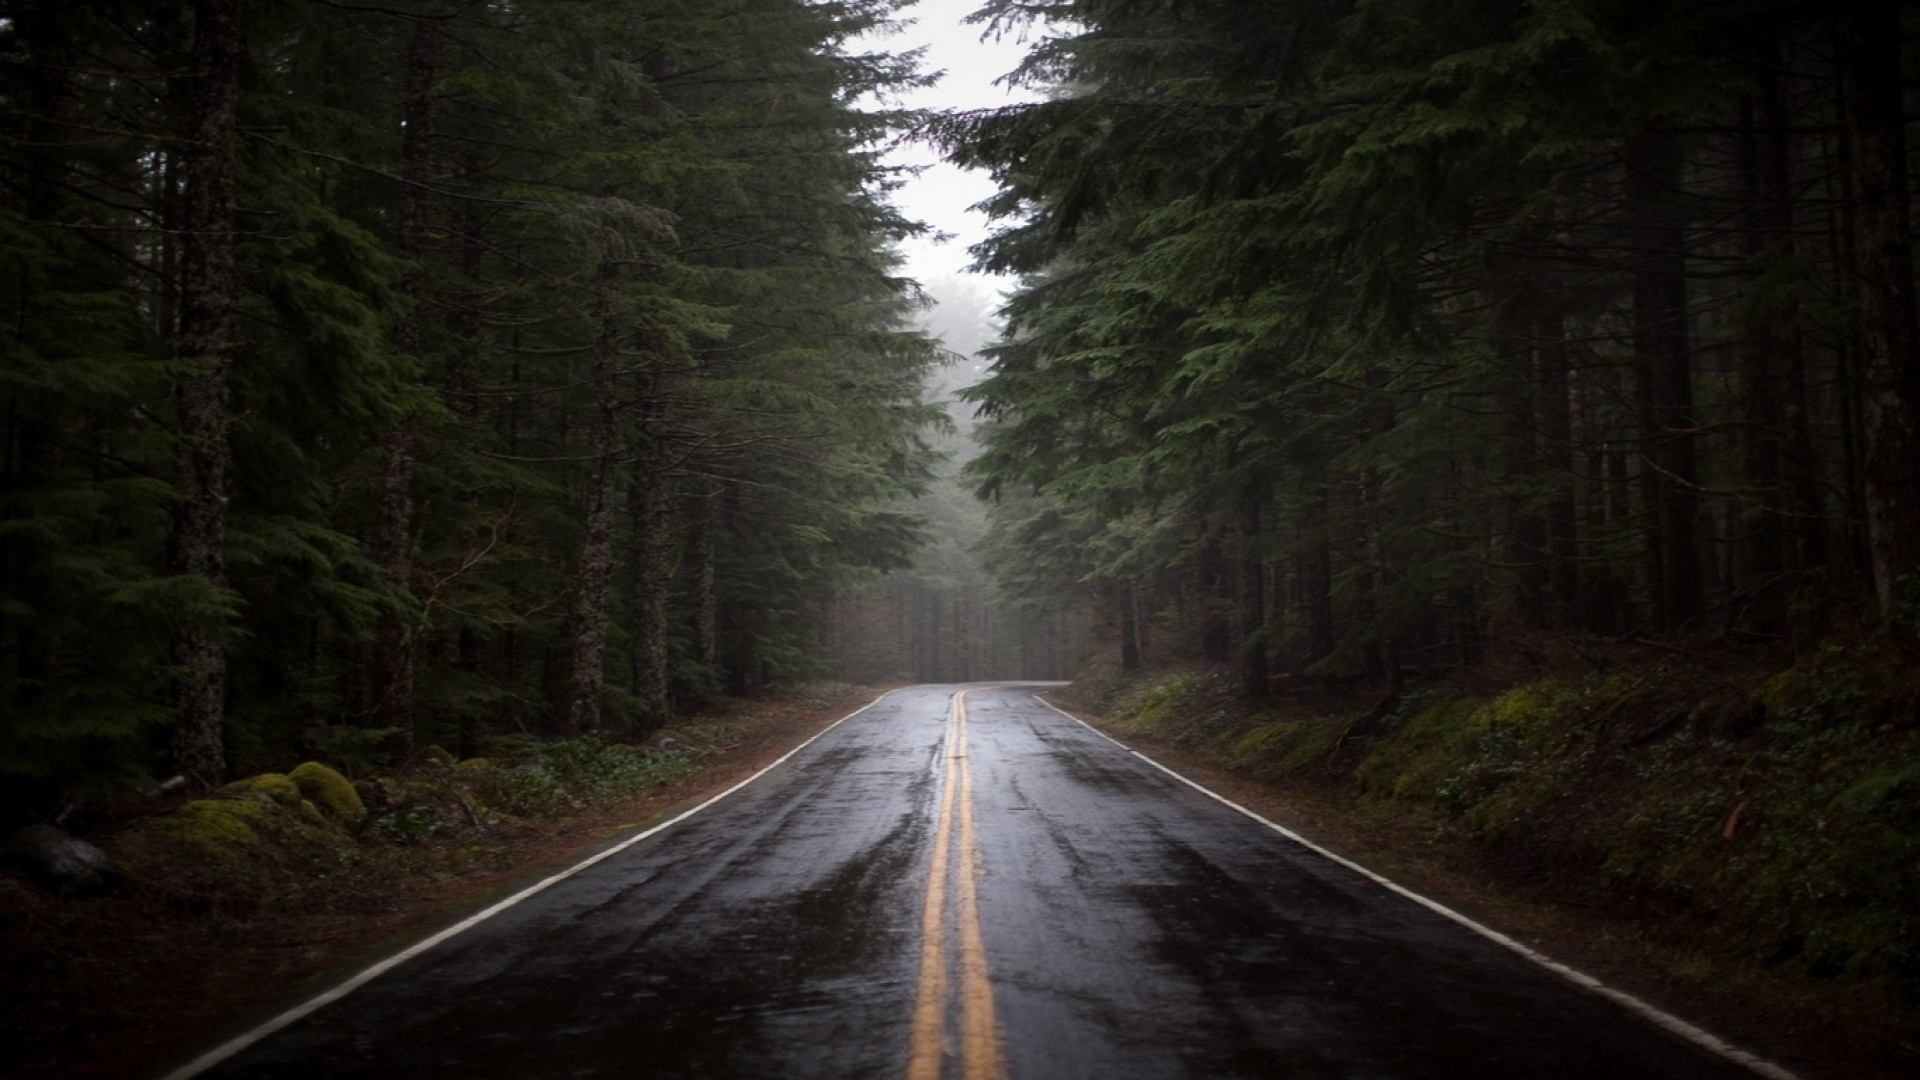 Earnings Disclaimer >> Download Wallpaper 1920x1080 road, fog, nature, trees Full HD 1080p HD Background